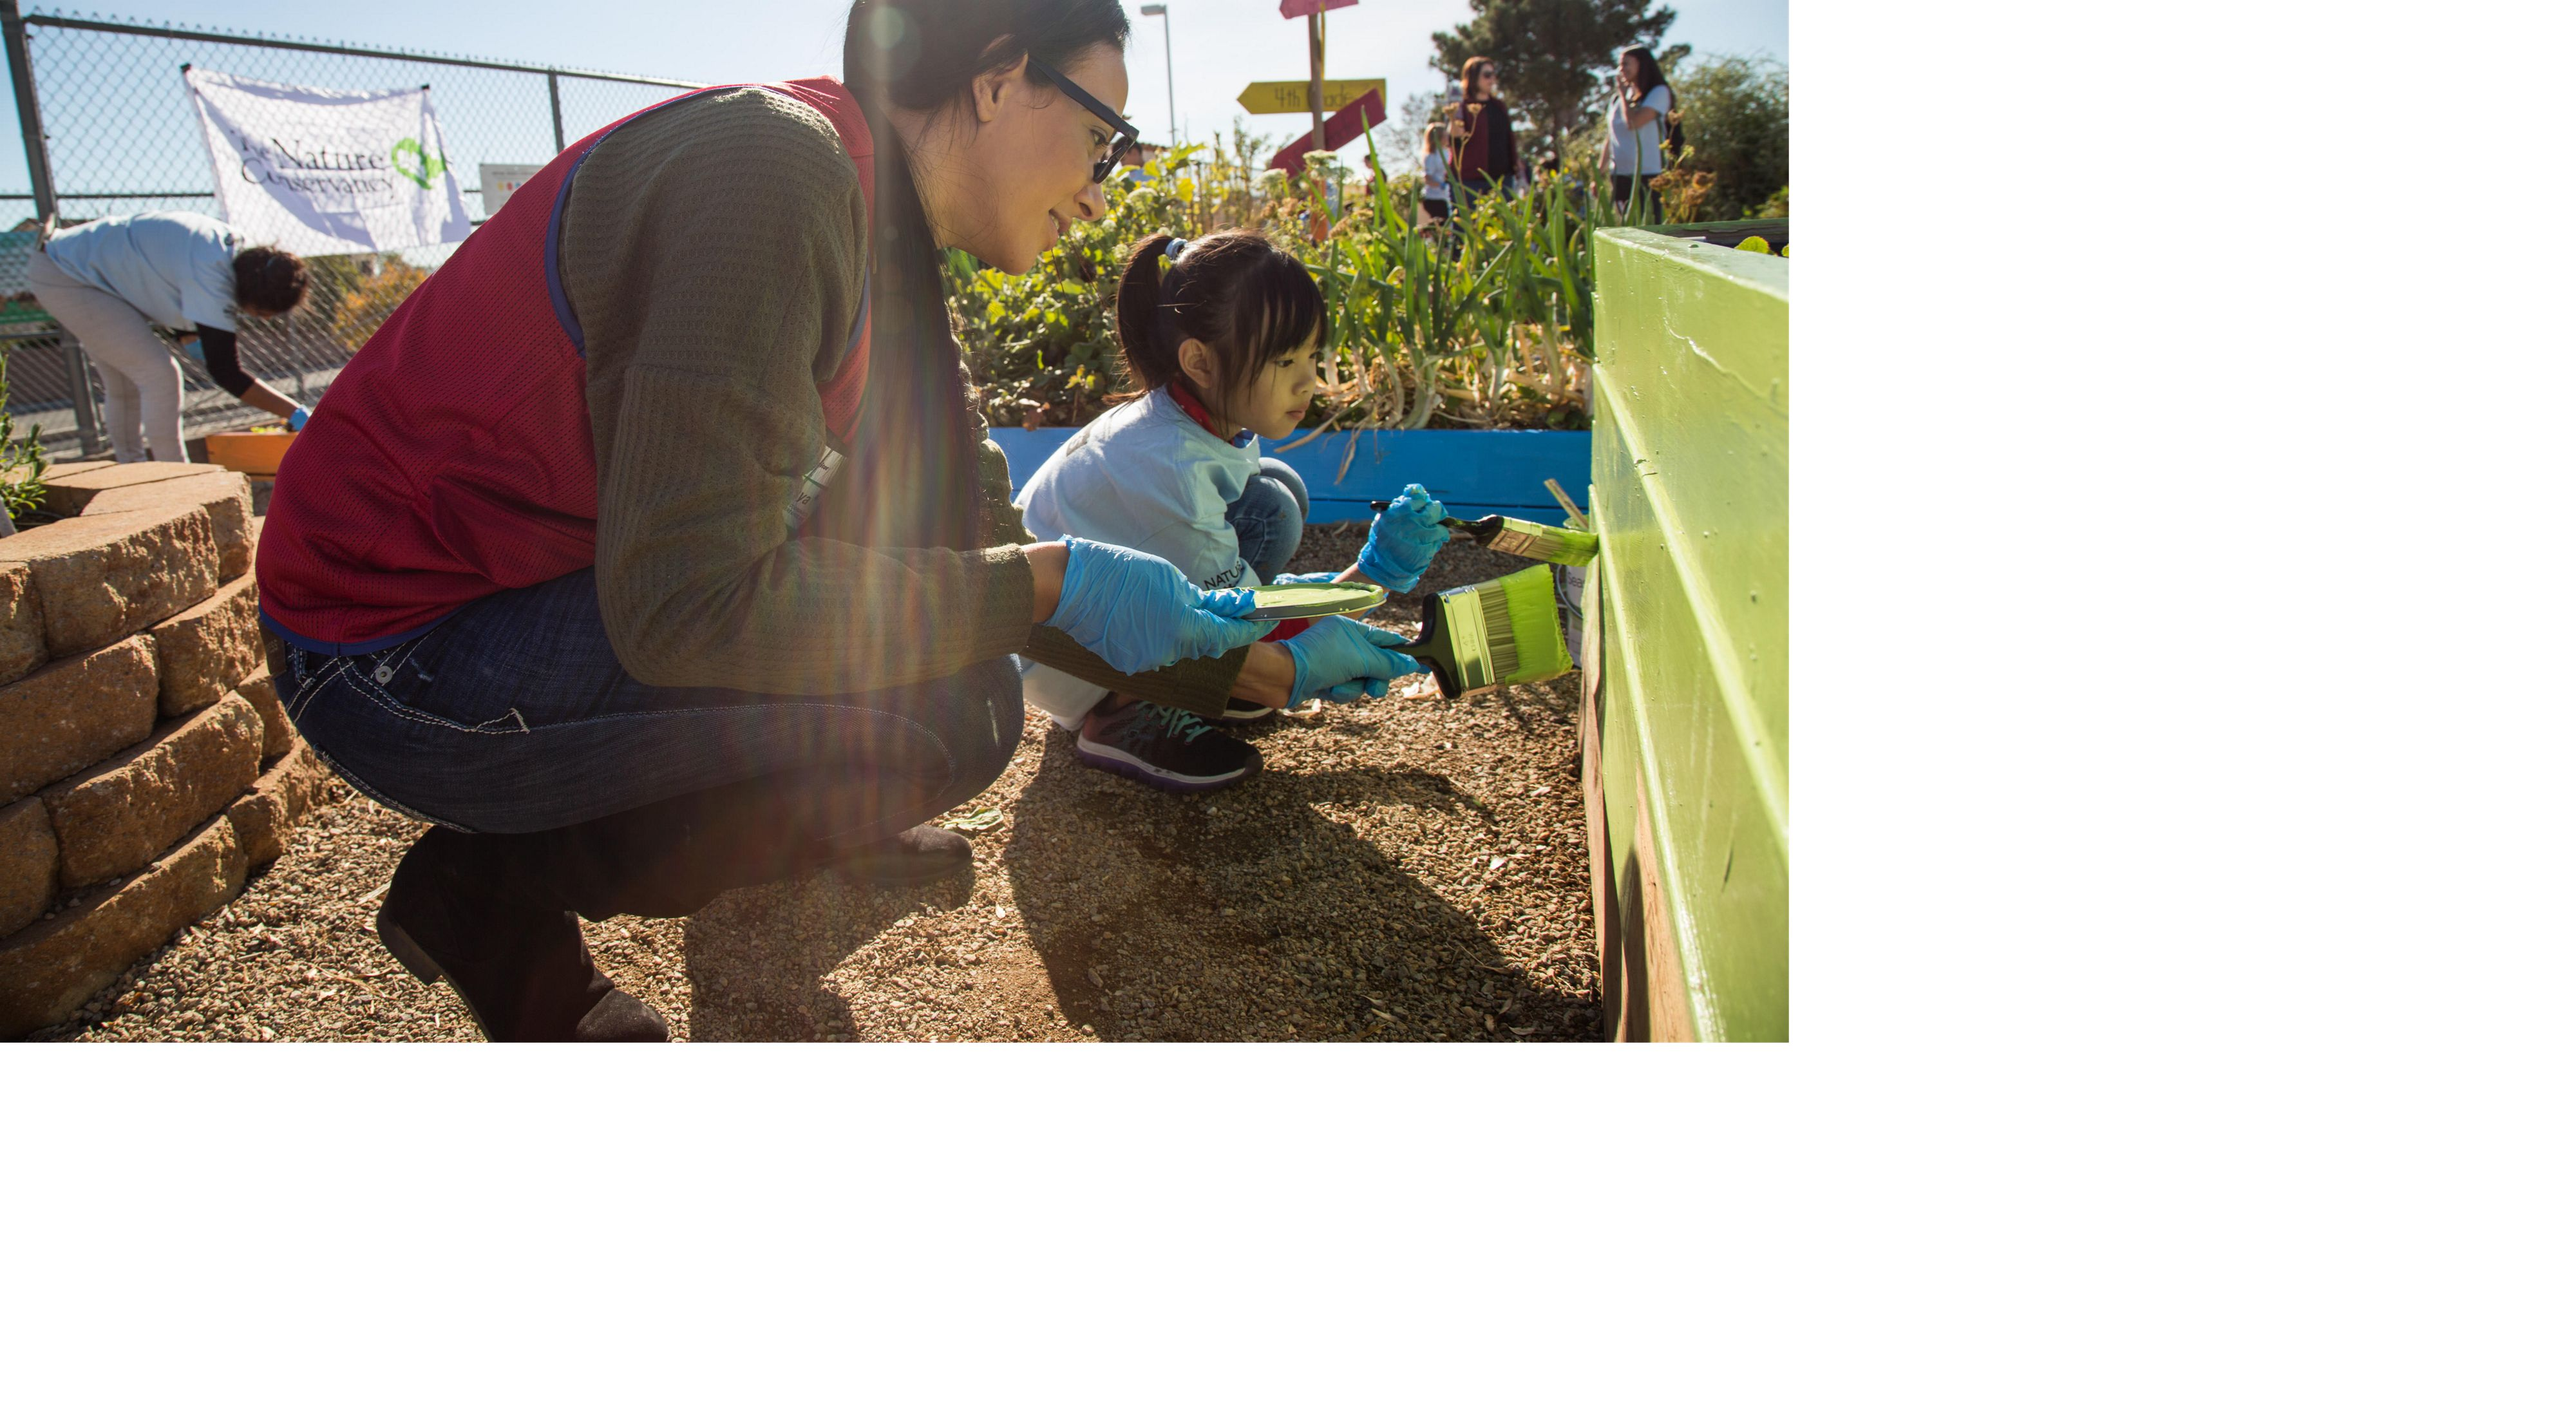 Students from Roger Bryan Elementary School and volunteers from Lowe's paint planter beds in Las Vegas, Nevada for a garden build volunteer day.